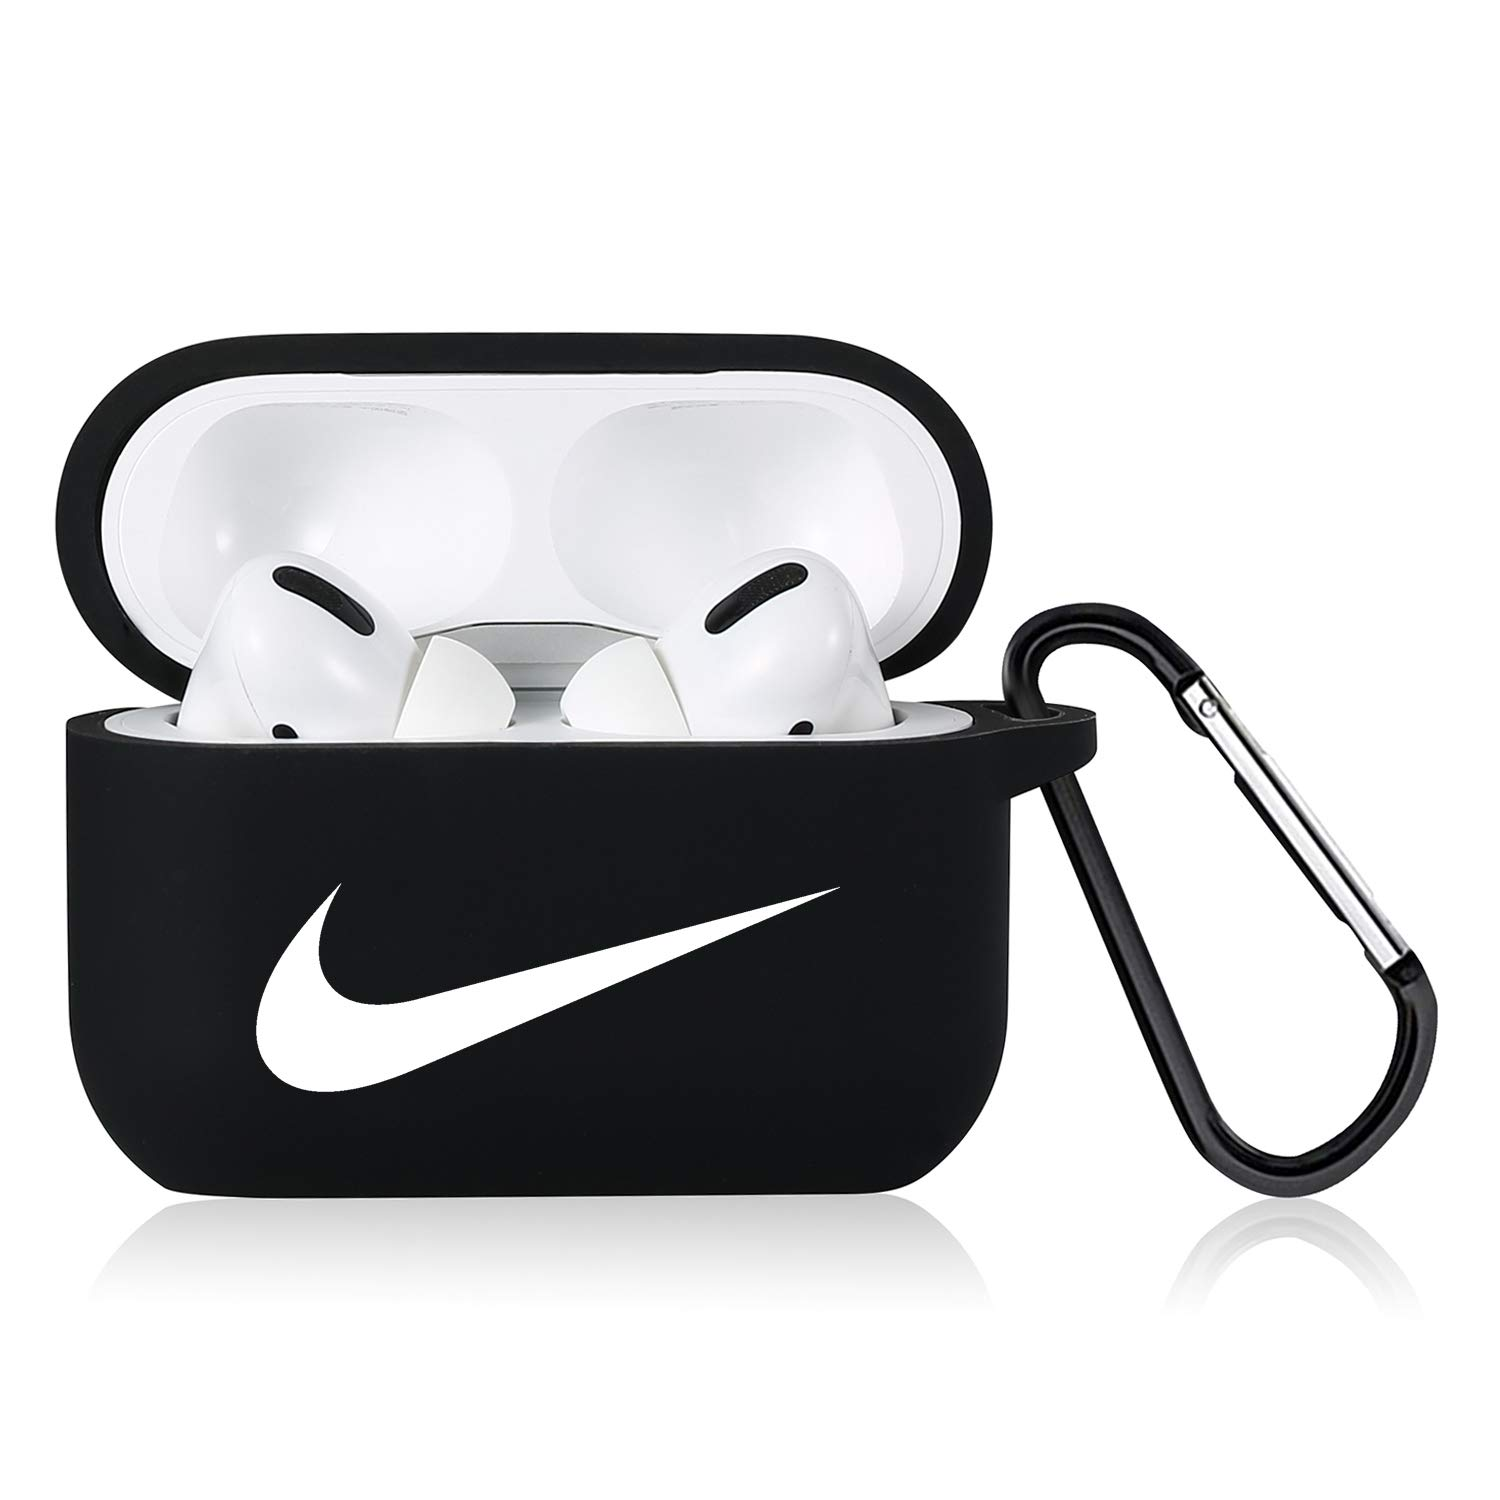 Punswan for Airpods Pro Case,Cute 3D Luxury Character Soft Silicone Stylish Cover, Sport Cool Keychain Style Design Skin,Cases with Lanyard Chain,for Girls Kids Boys Men Air pods Pro/3 (Black Right)